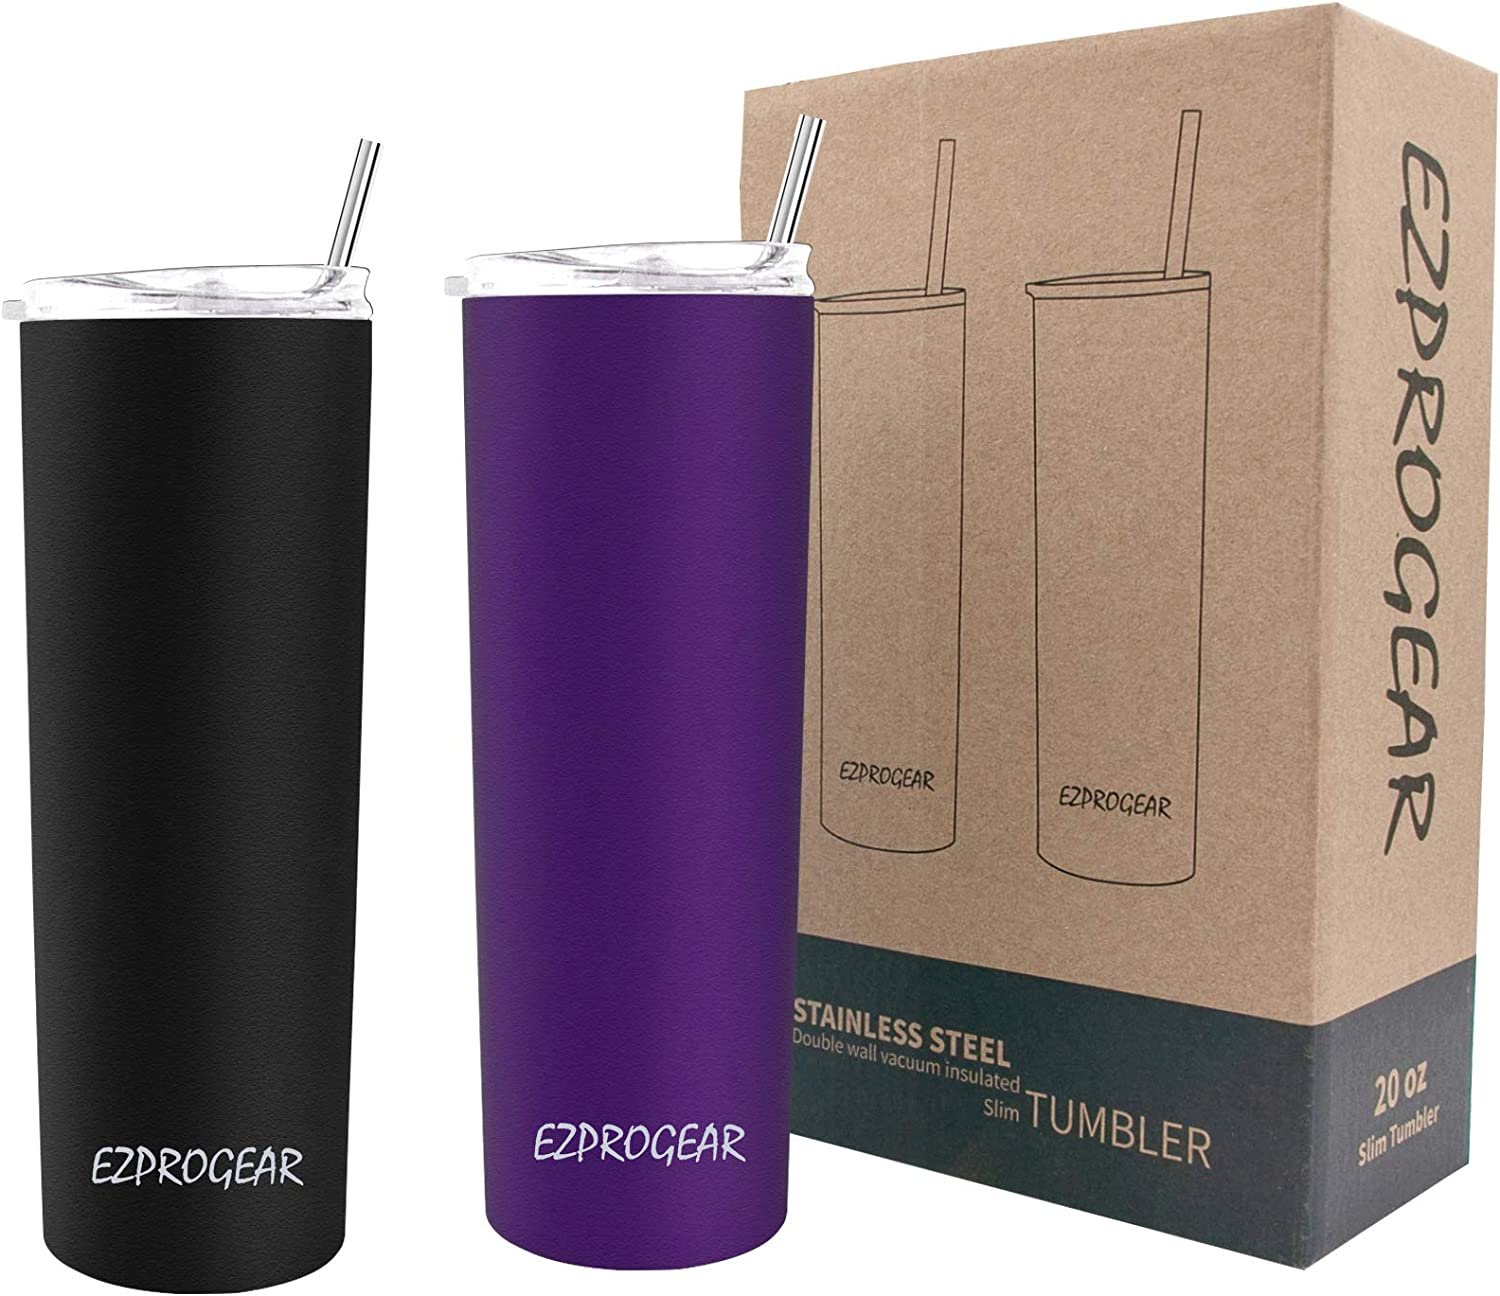 Ezprogear Stainless Steel Skinny Travel Tumbler Double Wall Vacuum Insulated with Straws (20 oz 2 Pack, Black/Grape Purple)